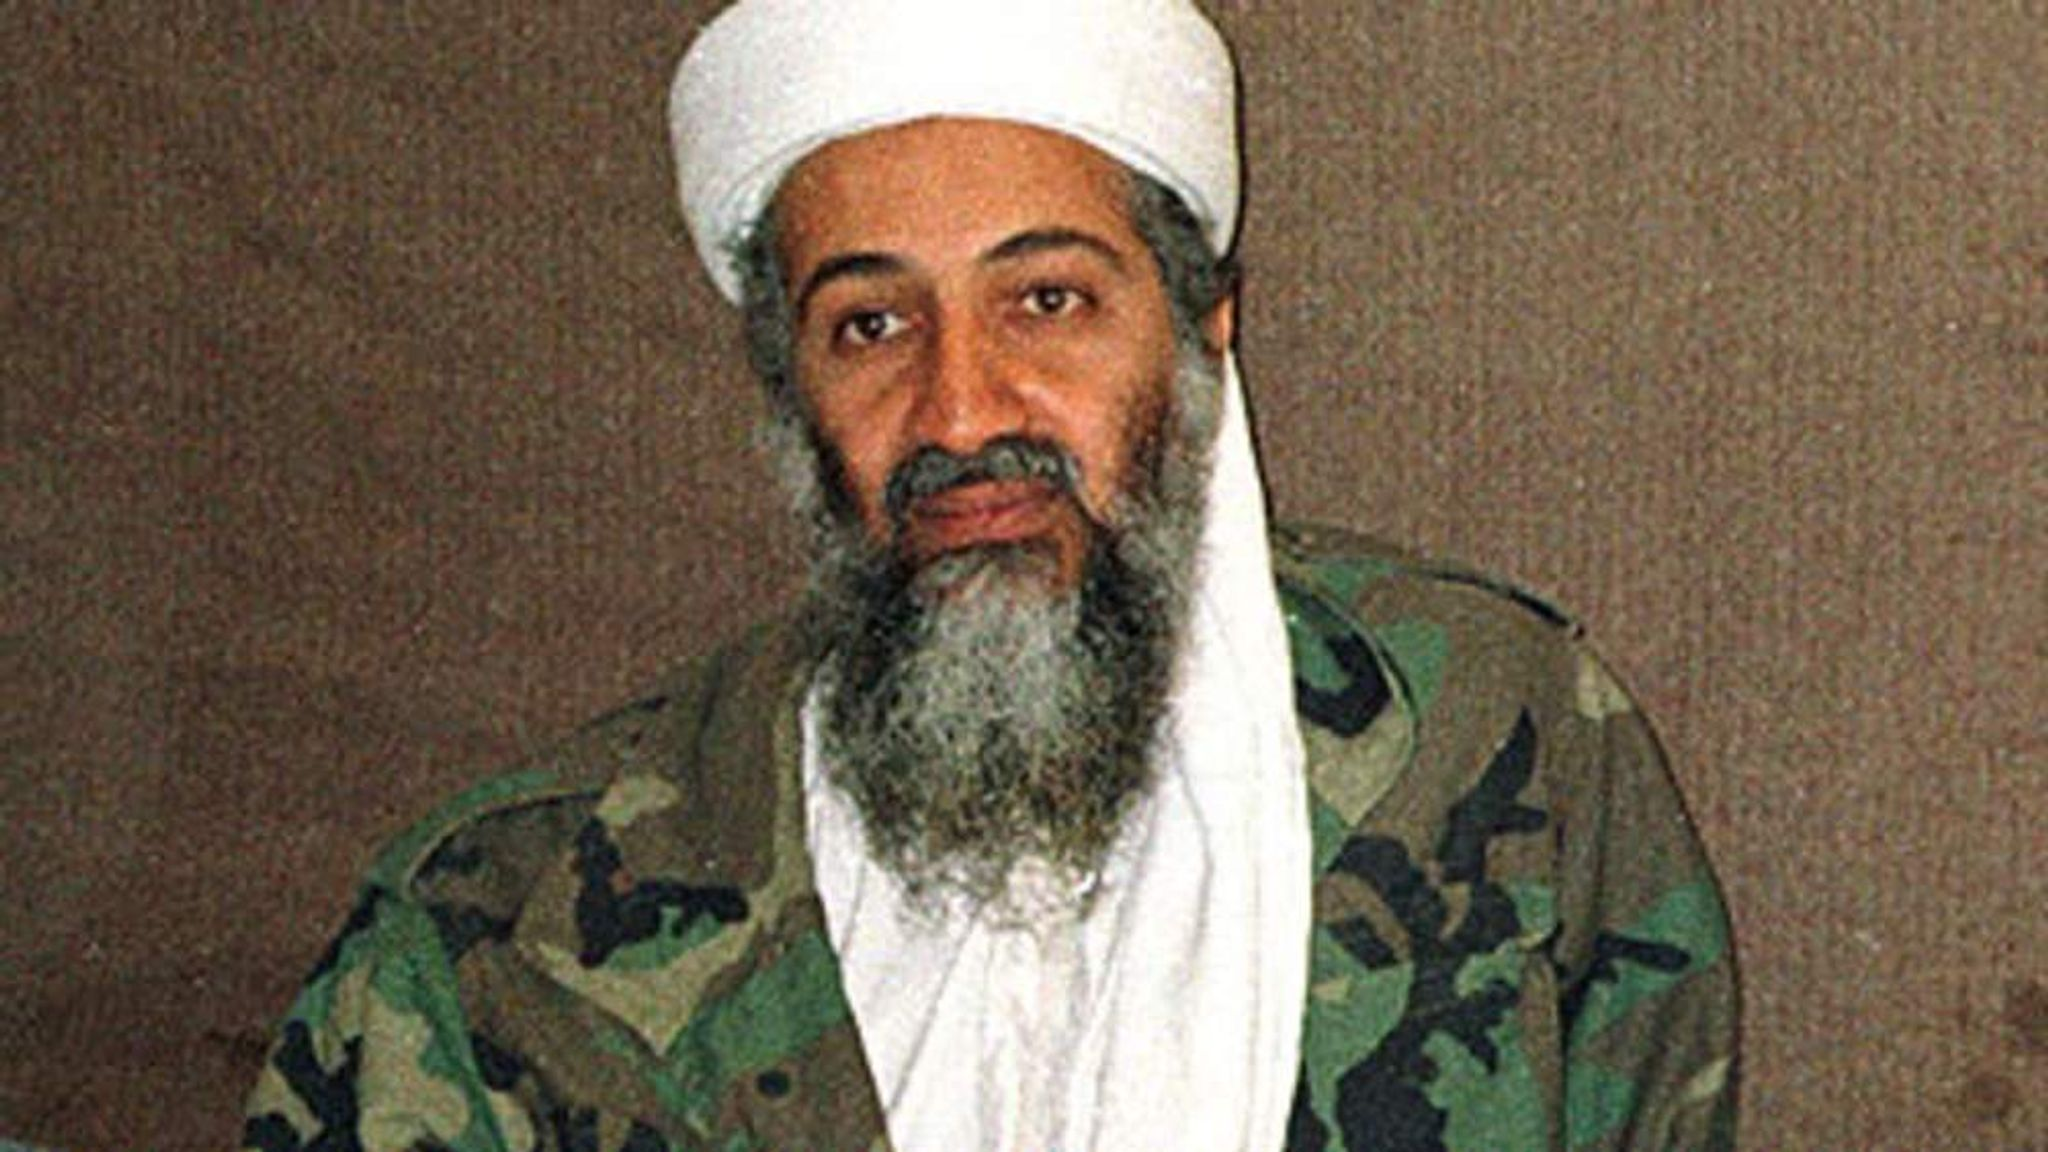 end osama bin laden Osama bin laden was born in riyadh, saudi arabia, in 1957 when the soviet union invaded afghanistan in 1979, bin laden joined the afghan resistance after the soviet withdrawal, bin laden formed the al-qaeda network which carried out global strikes.